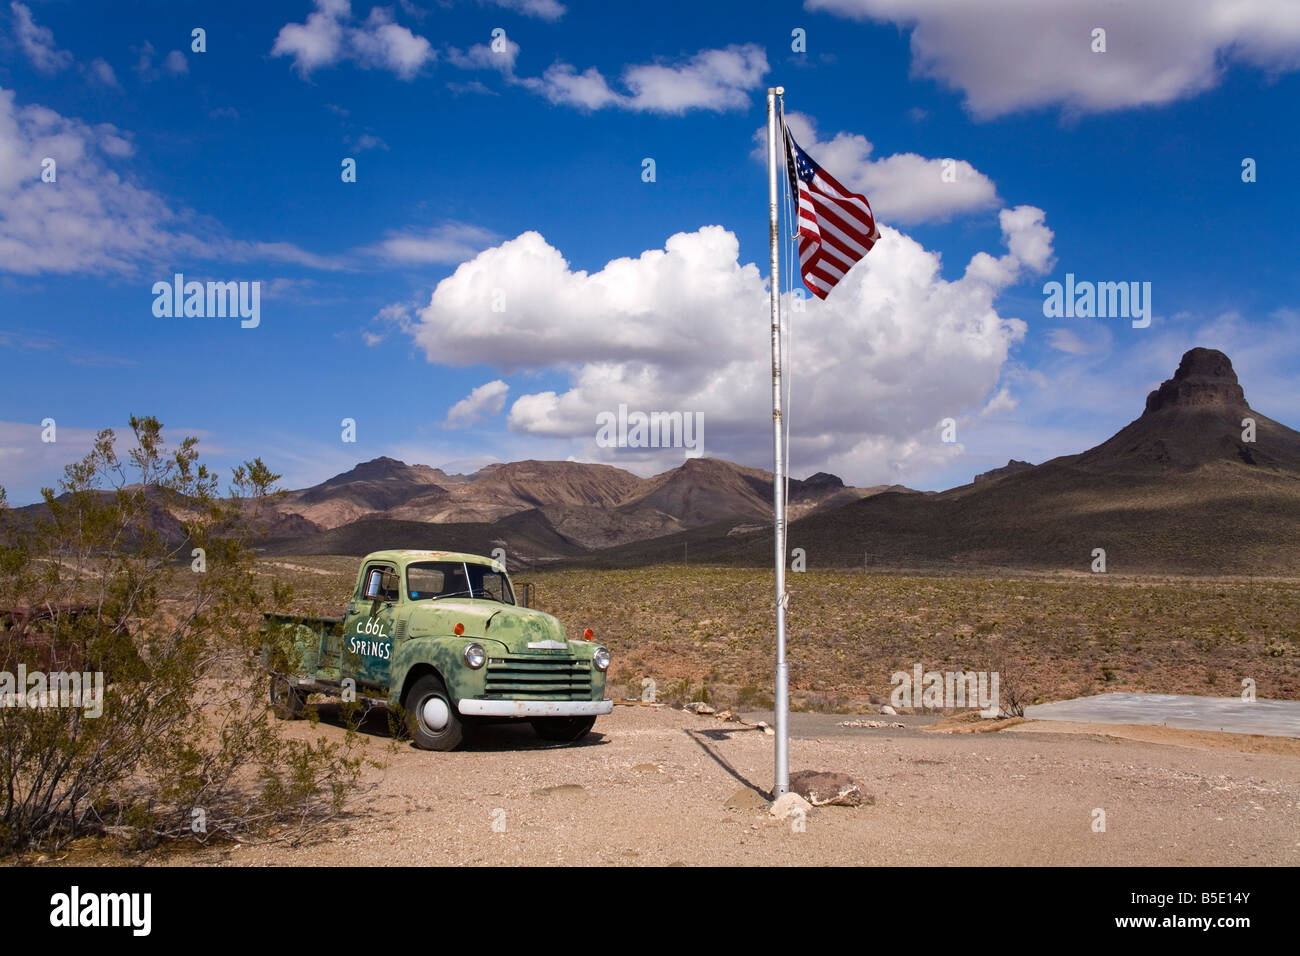 fe870a62779870 Truck Route Stock Photos   Truck Route Stock Images - Alamy